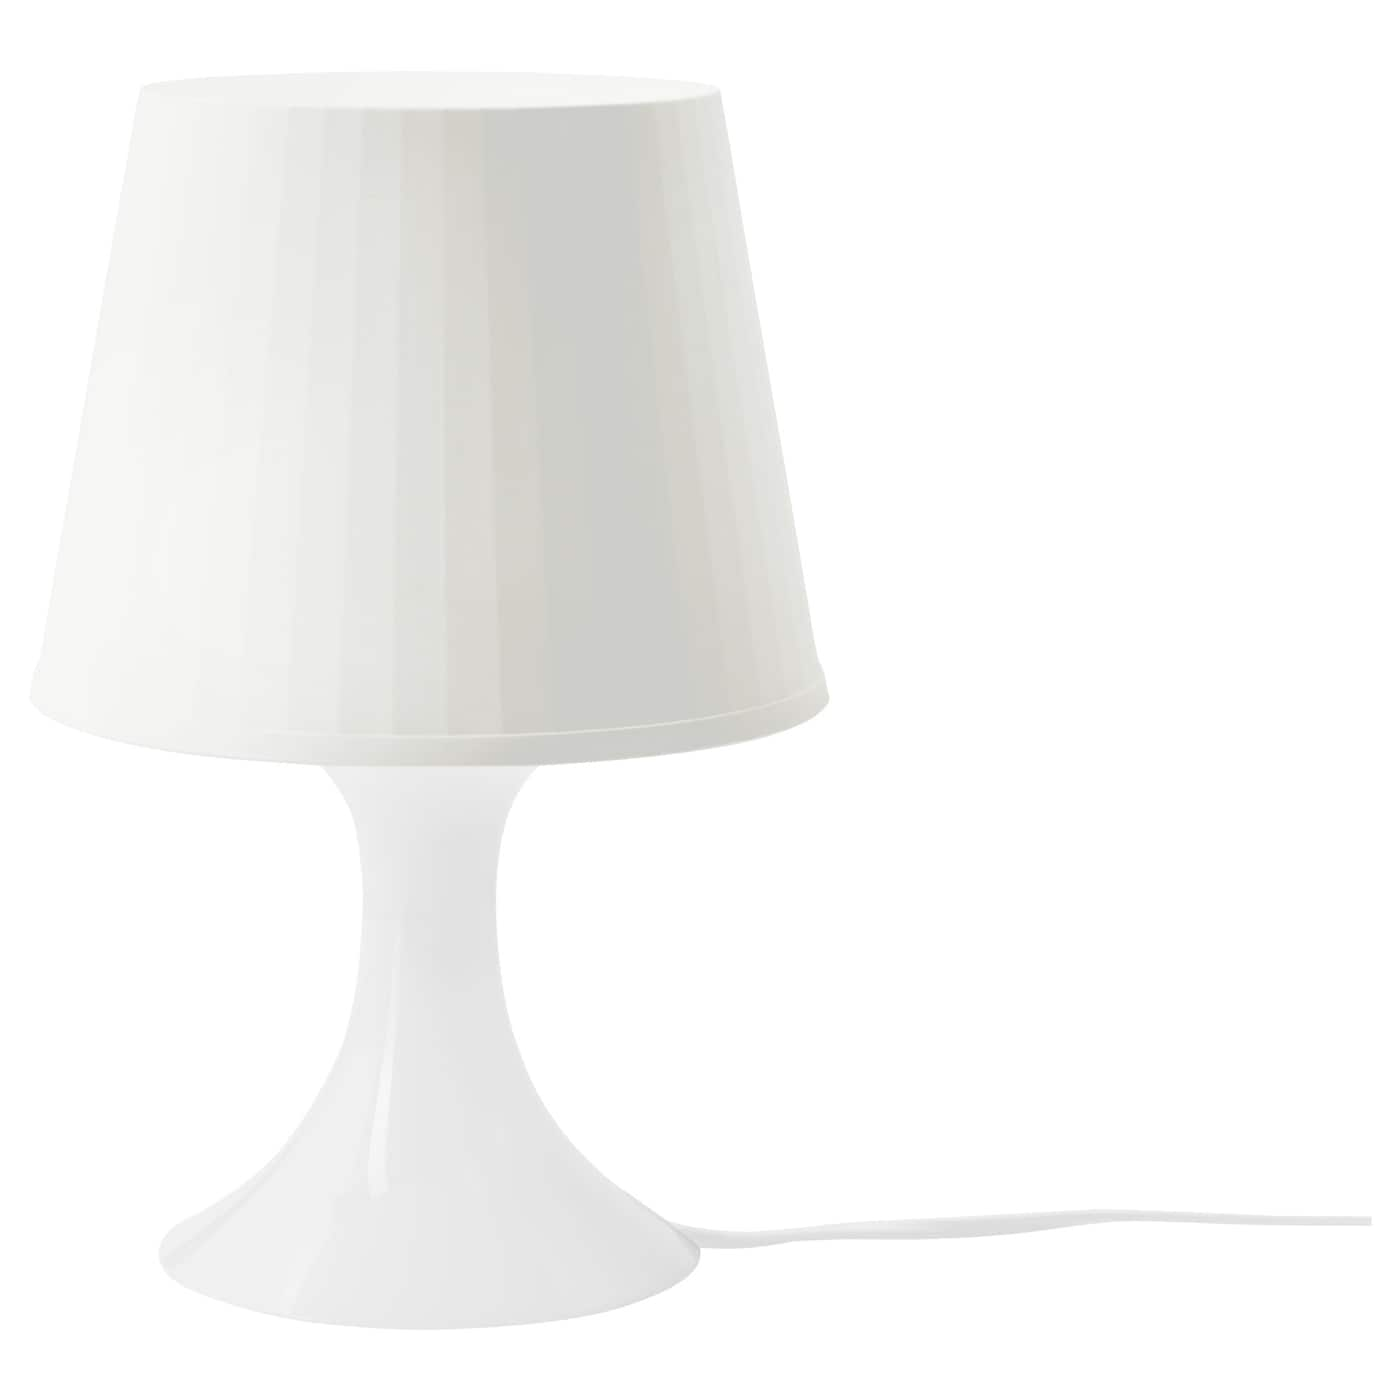 Lampan table lamp white ikea ikea lampan table lamp creates a soft cosy mood light in your room mozeypictures Gallery